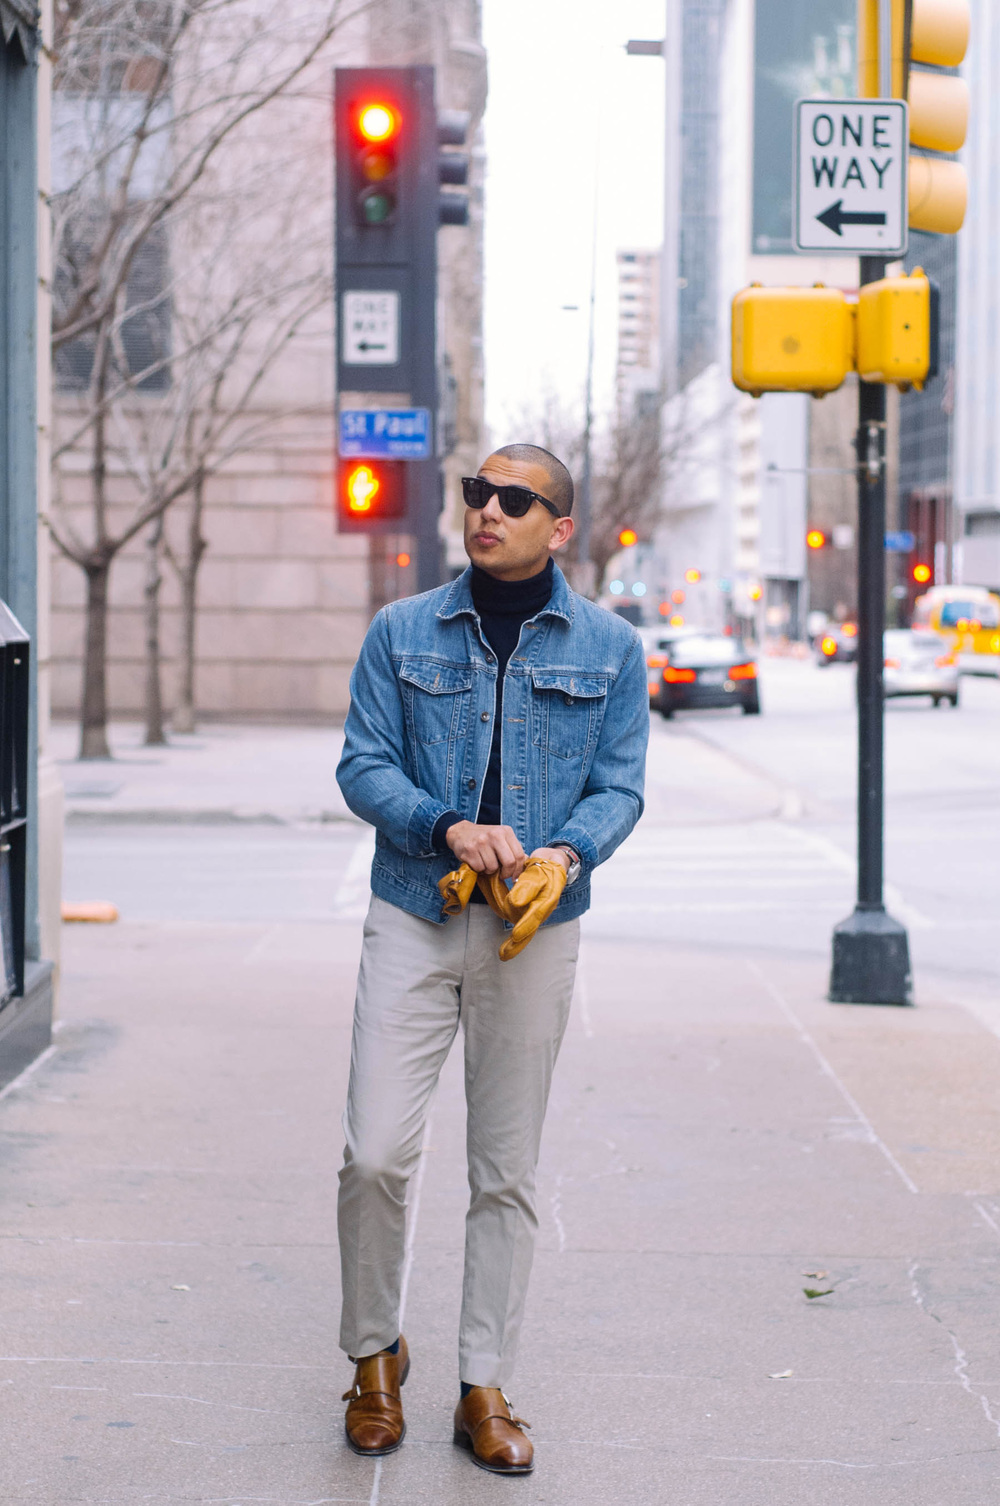 Denim Jacket: Old Navy (similar here) | Turtleneck: J.Crew | Pants: J.Crew | Shoes: Magnanni | Gloves: Jack Spade (GREAT and affordable alternative here) | Sunglasses: RayBan